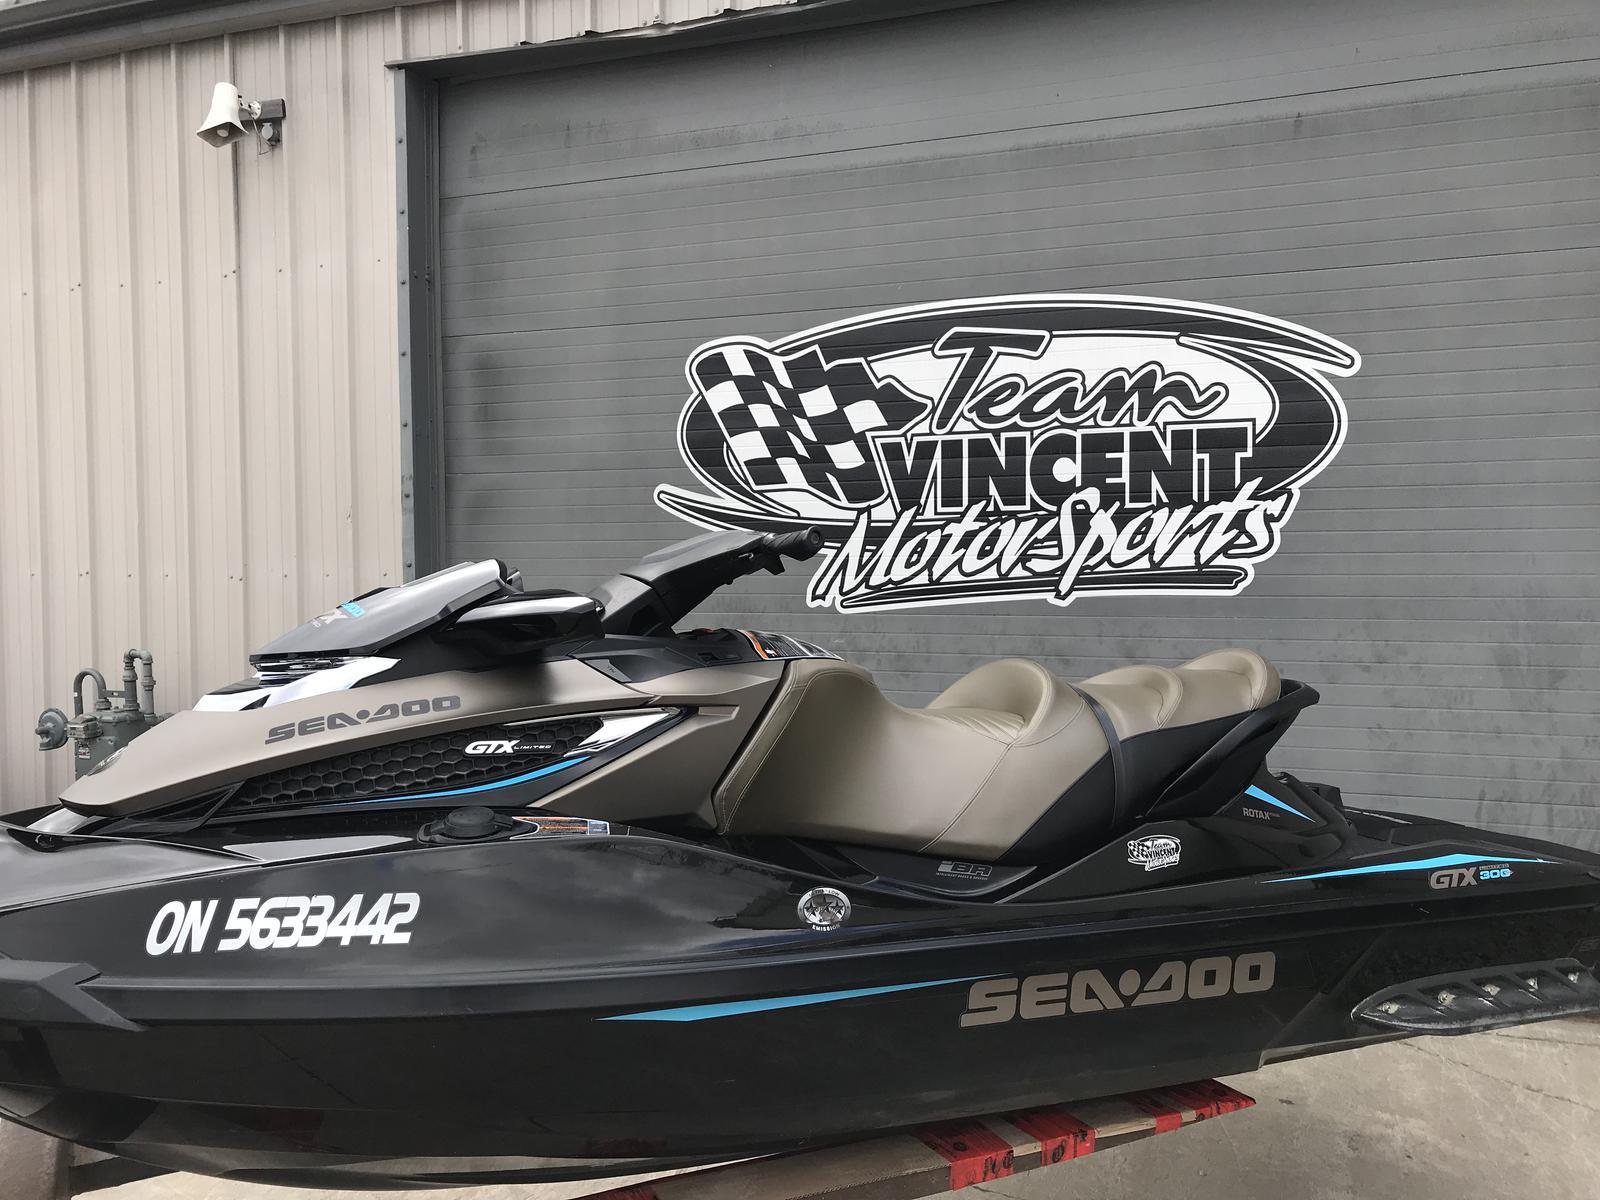 For Sale: 2017 Sea Doo Pwc Gtx Limited 300 ft<br/>Team Vincent Motorsports Inc